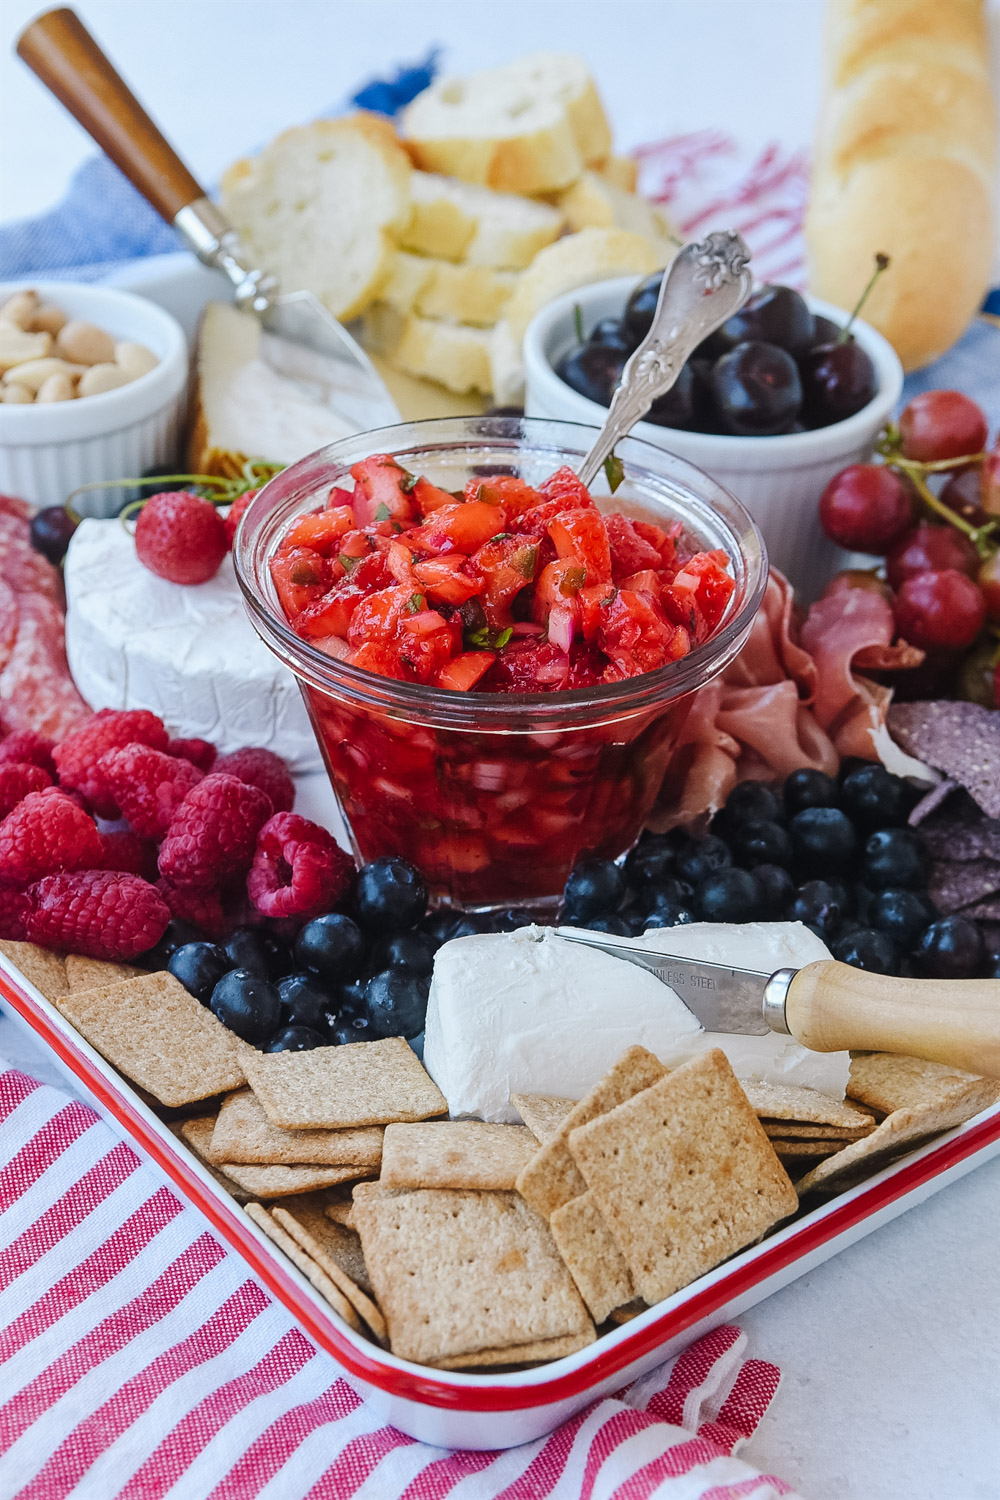 4th of July Appetizer Charcuterie Board | Patriotic Charcuterie Boards